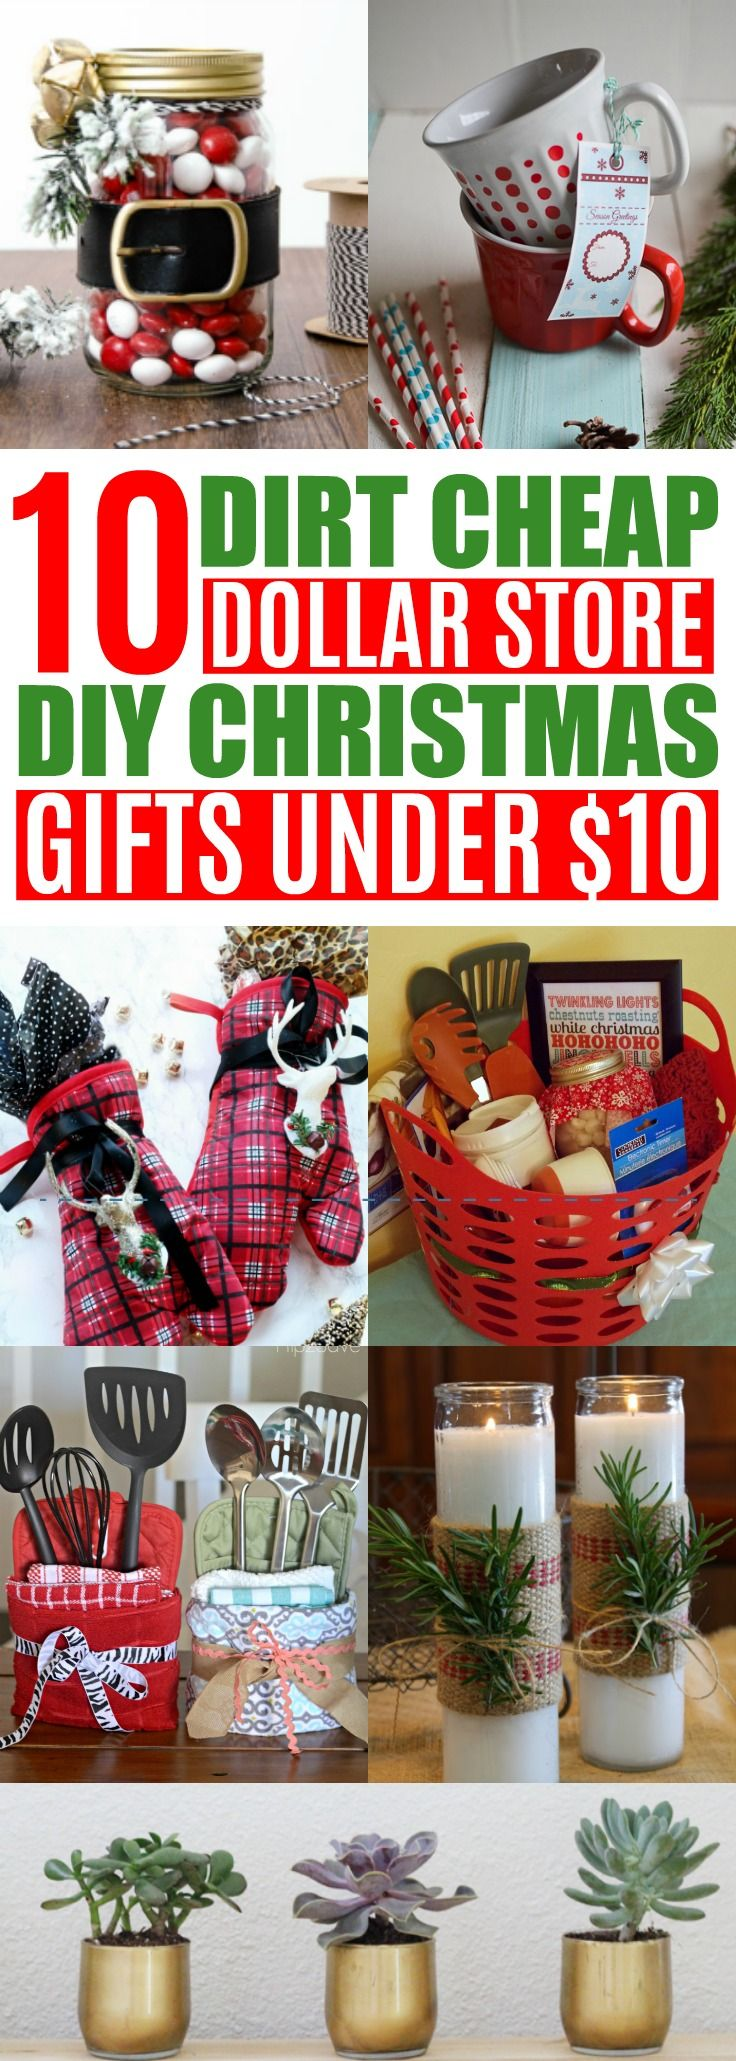 Christmas gift ideas for him under $100